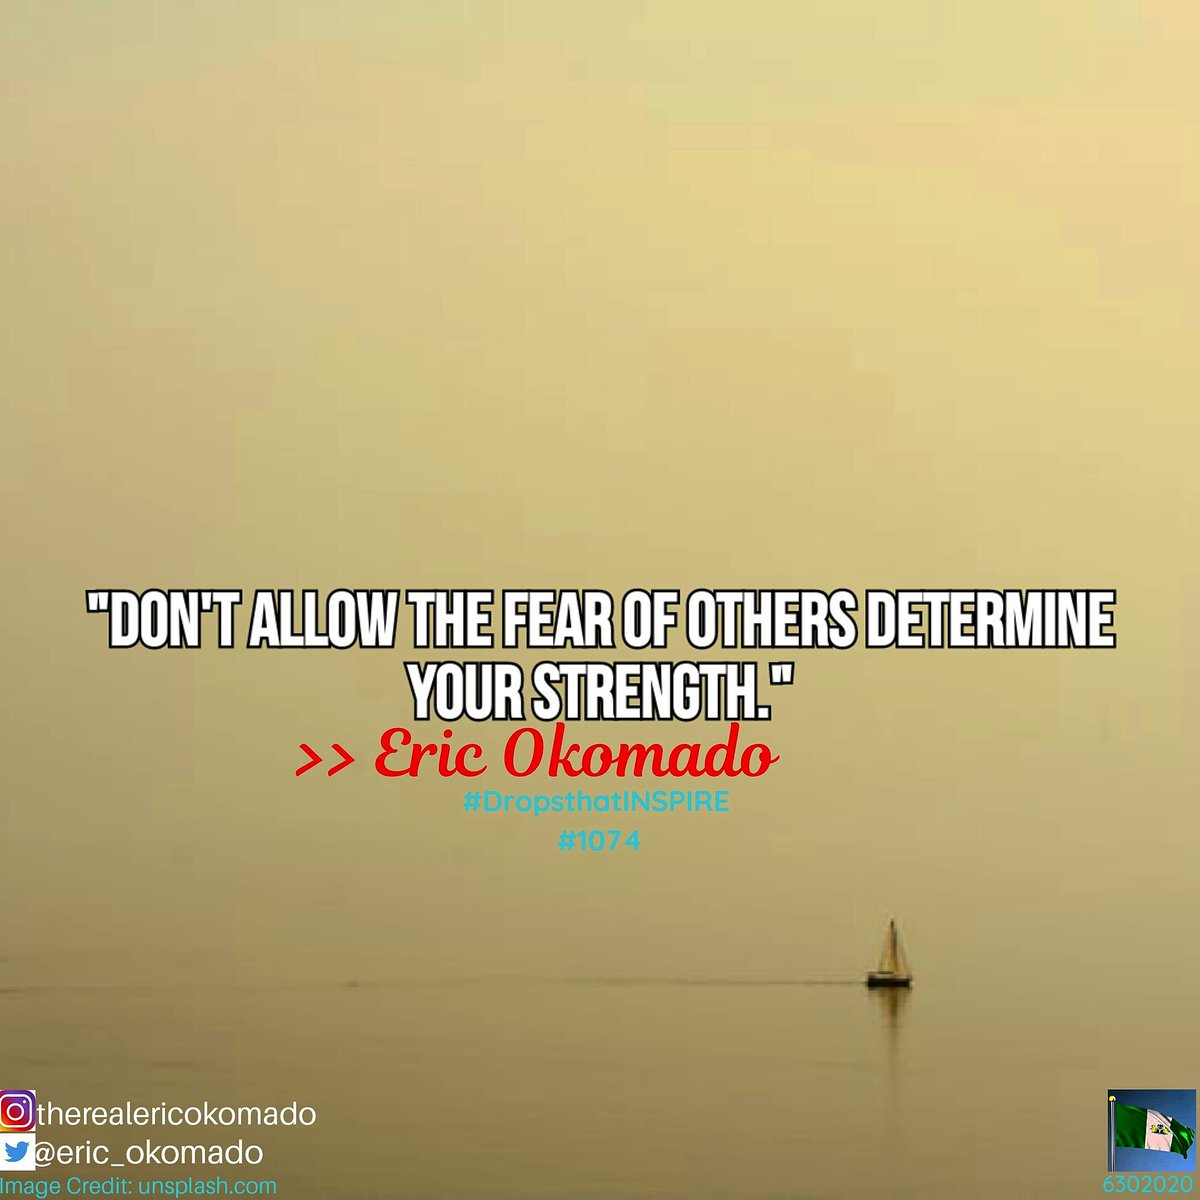 Protect your mind against the fears of others. Project yourself with faith and sail in the trajectory of success.  #DropsthatINSPIRE #BeINSPIREDtoday #fear #TuesdayMotivation #trajectory #success #voyage #faith #life #ThinkBIGSundayWithMarsha #lockdown #f4f #follow4followbackpic.twitter.com/8wv1nYJtrn